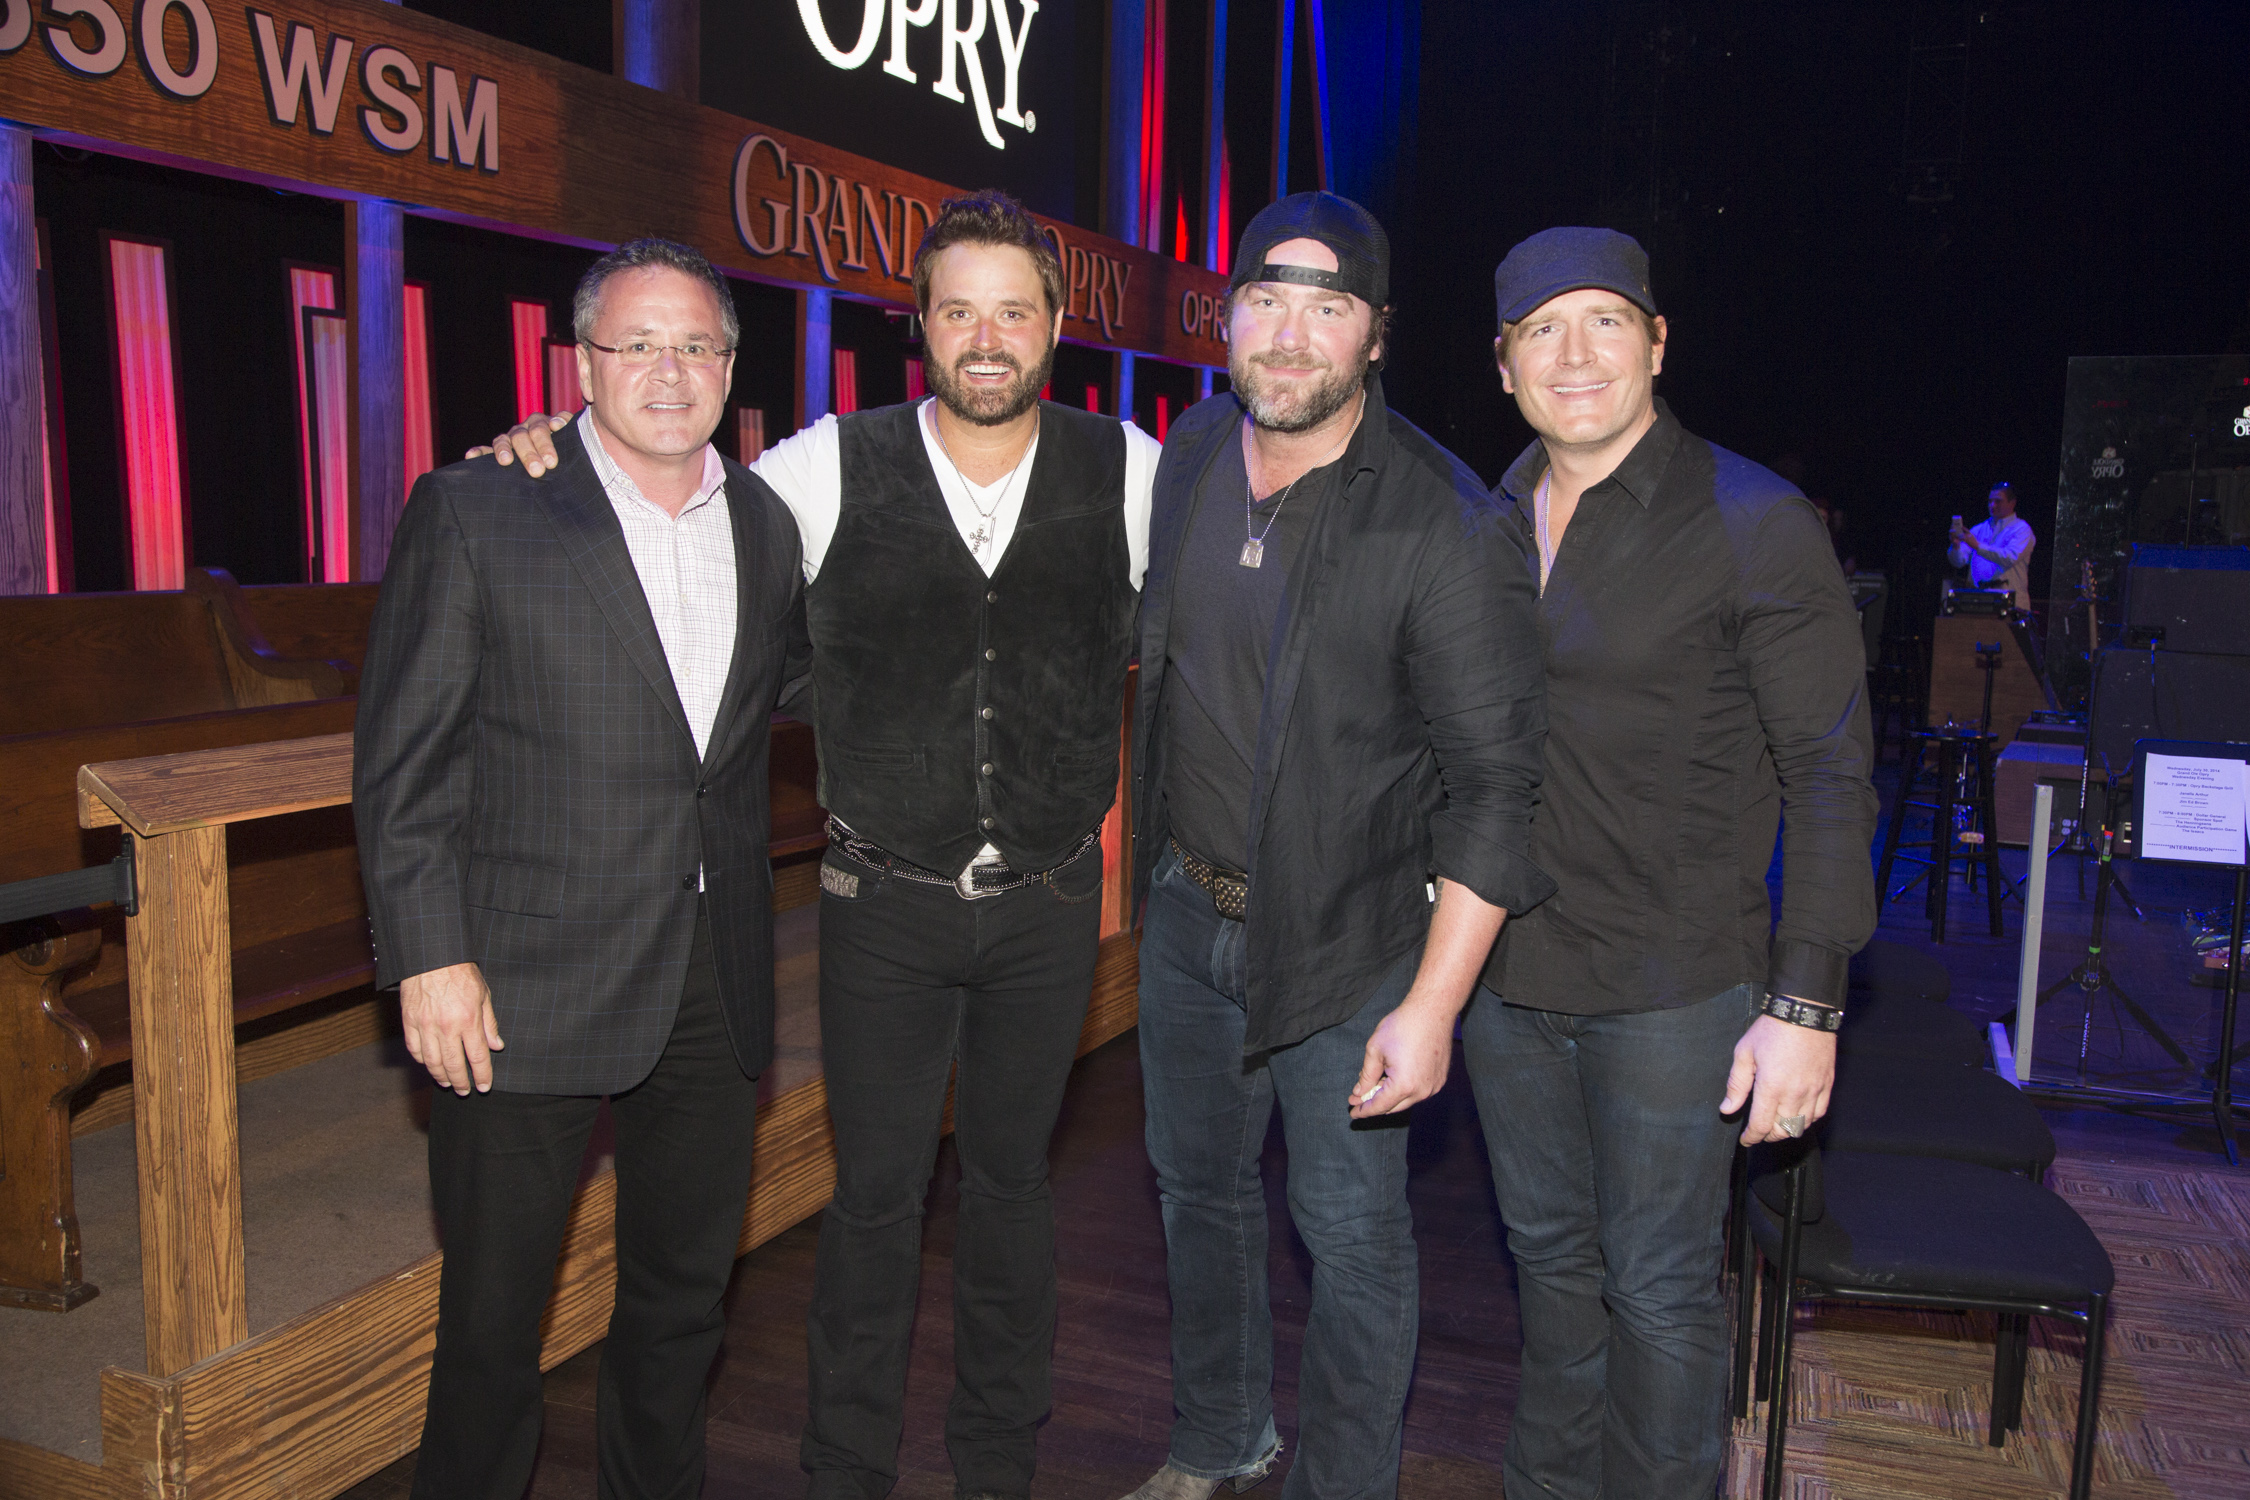 Pictured (L-R): Pete Fisher, Grand Ole Opry General Manager, Randy Houser, Lee Brice and Jerrod Niemann  Photo Credit: Chris Hollo for the Grand Ole Opry 2014